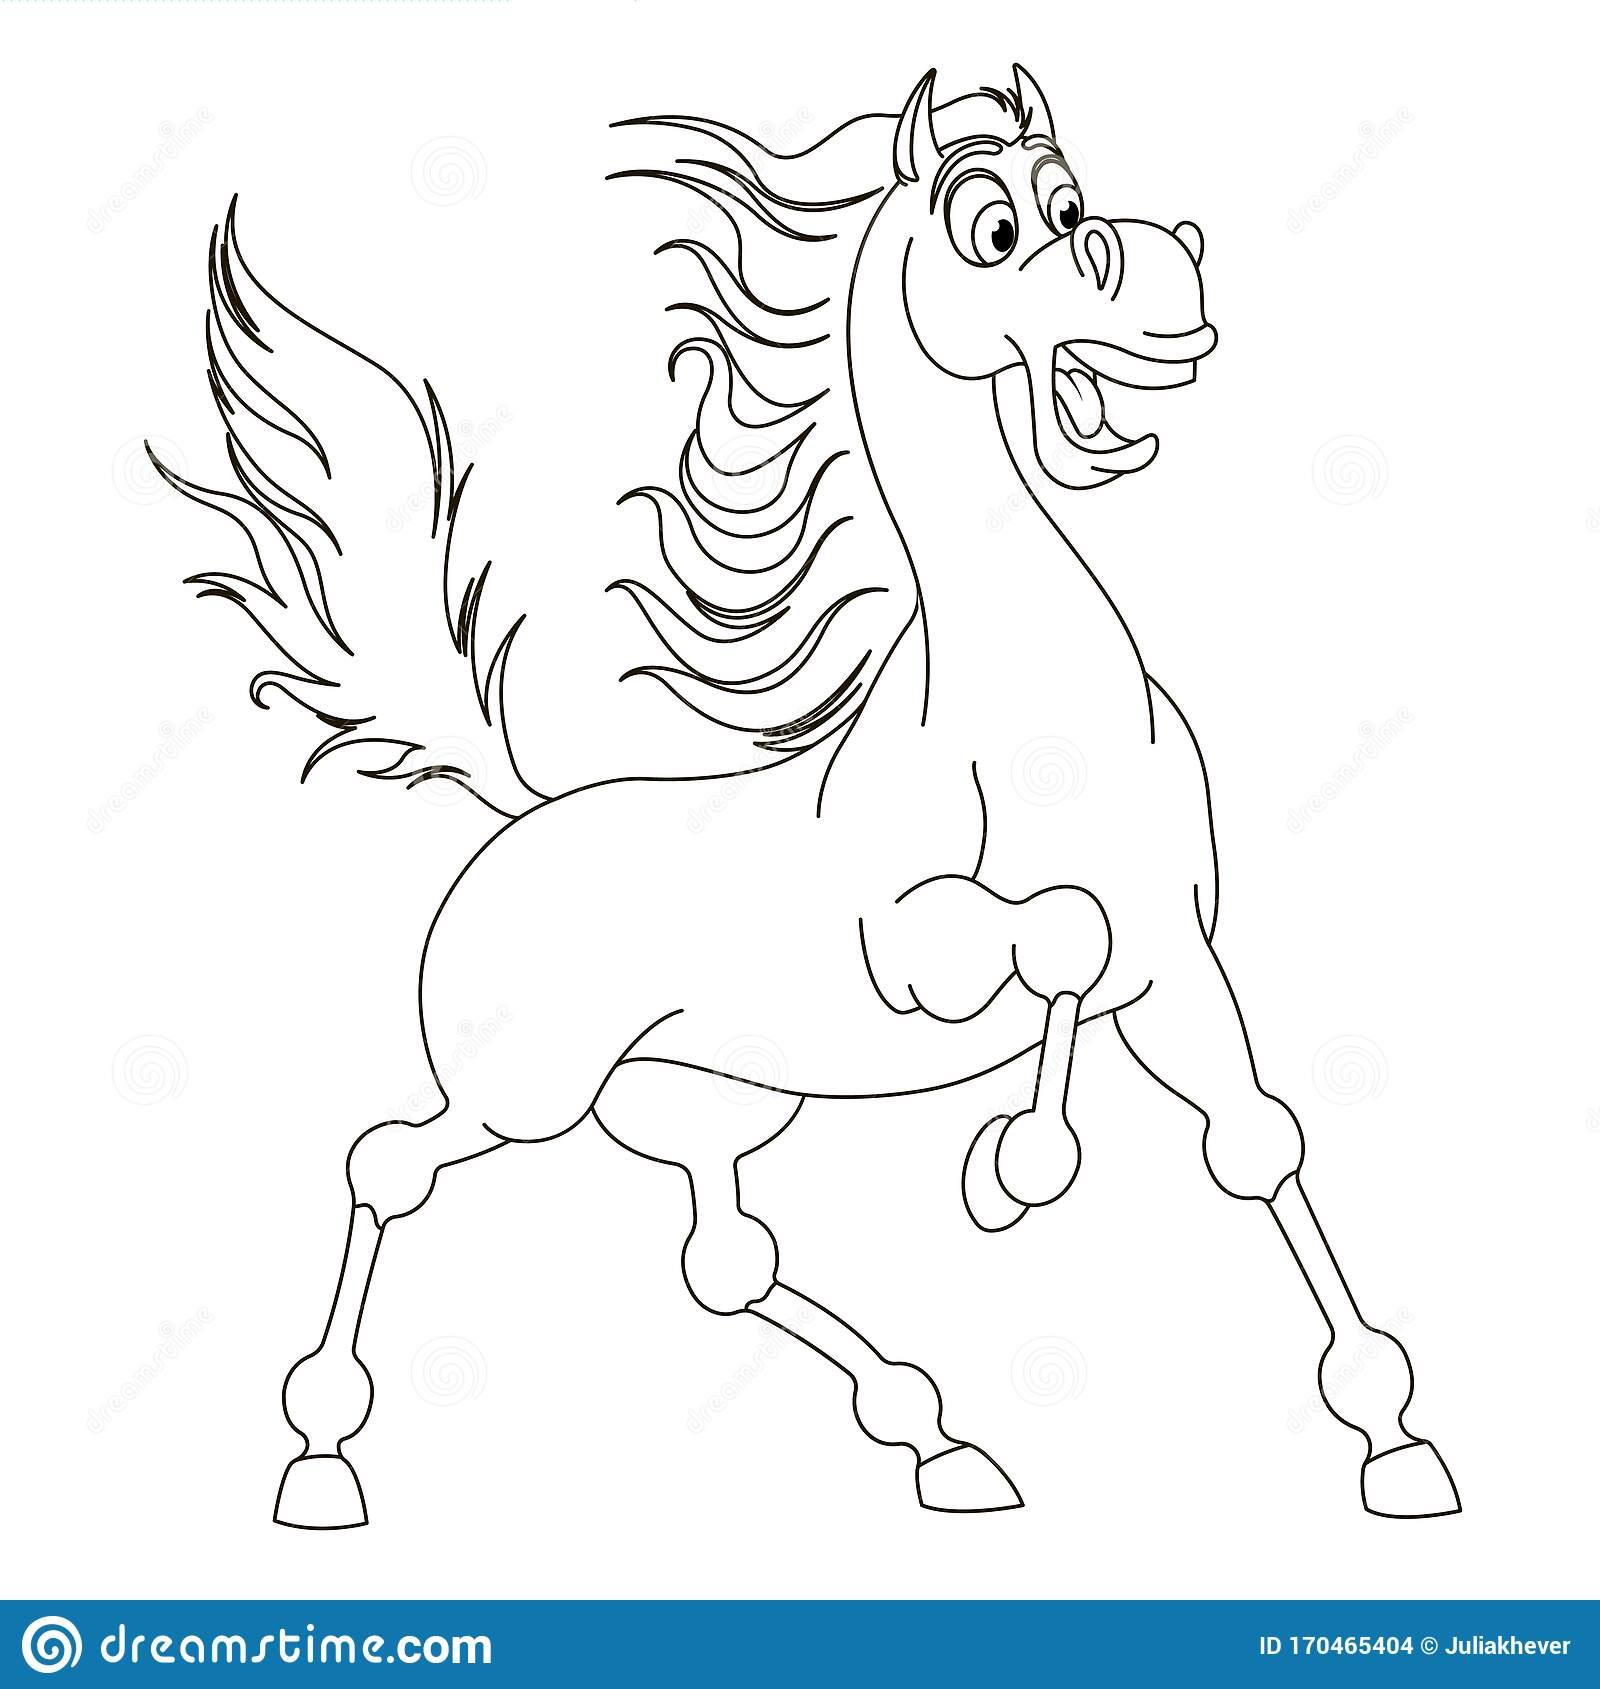 Cute Hand Drawn Fearing Horse Drawing Contour For Coloring Stock Vector Illustration Of Page Contour 170465404